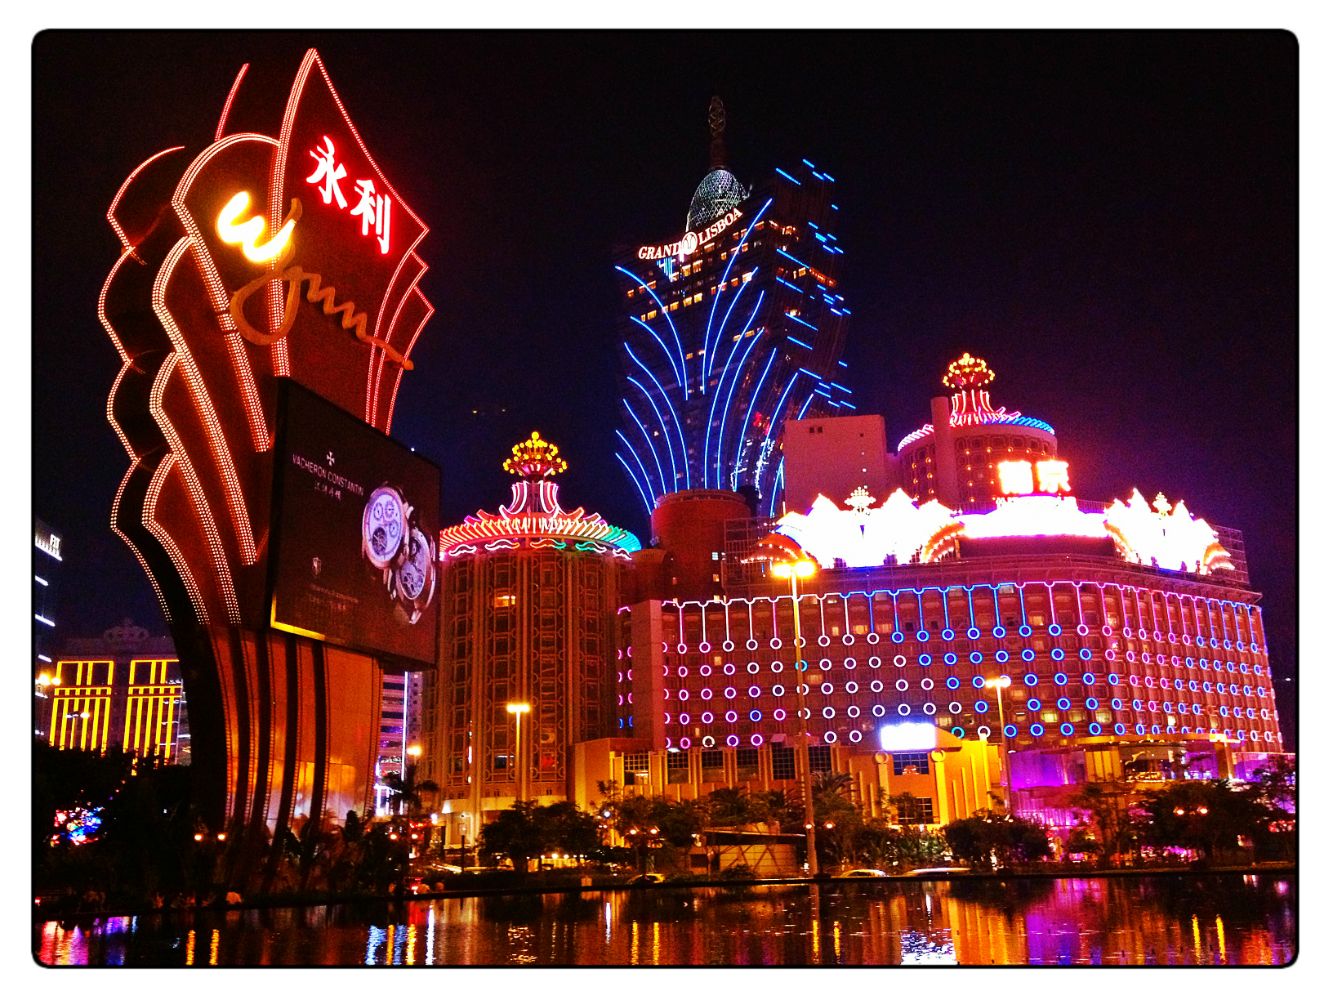 Casino_Lights_In_Macau.jpg